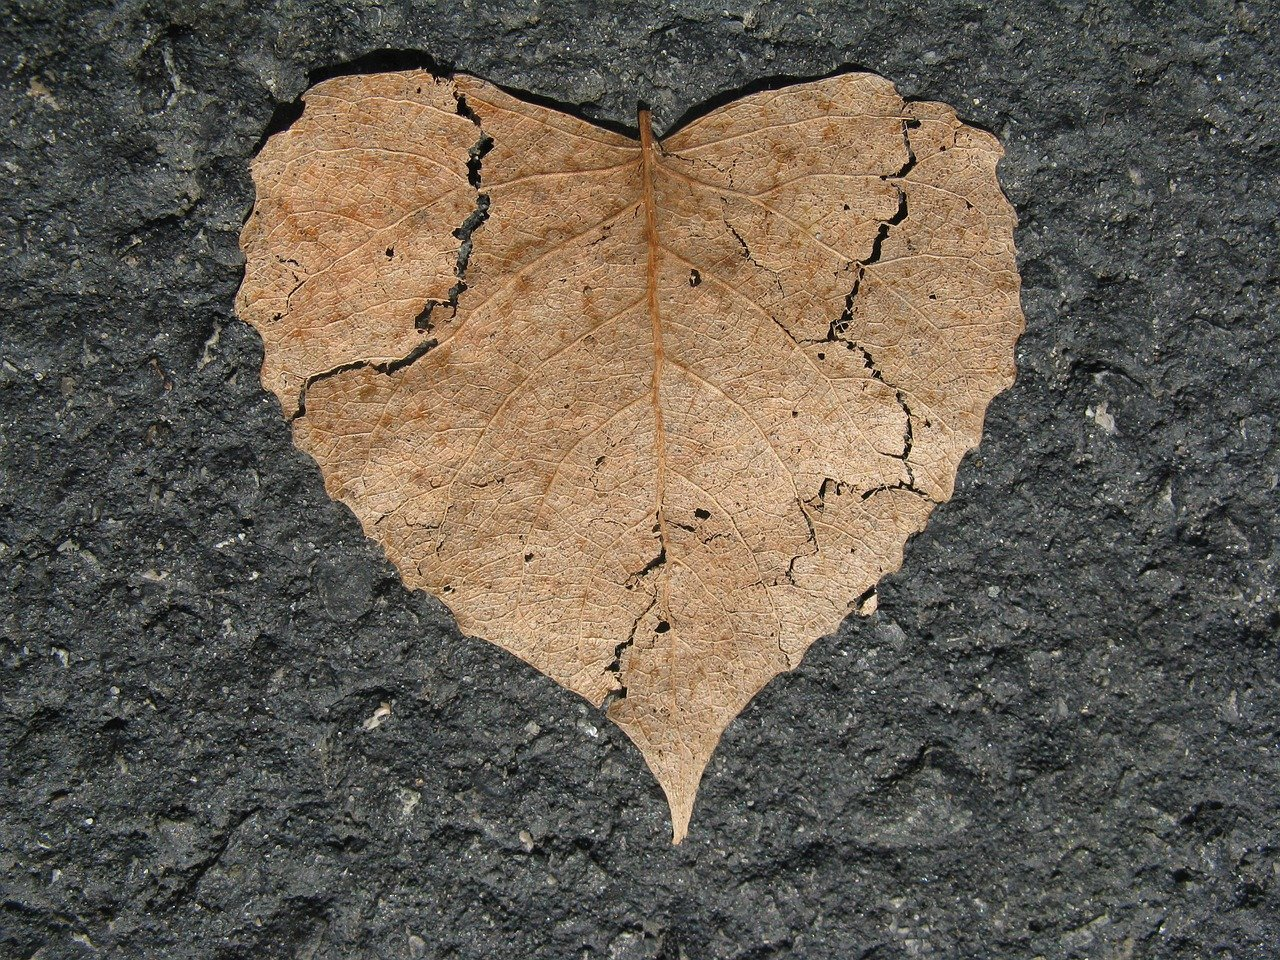 heart, broken, nature love